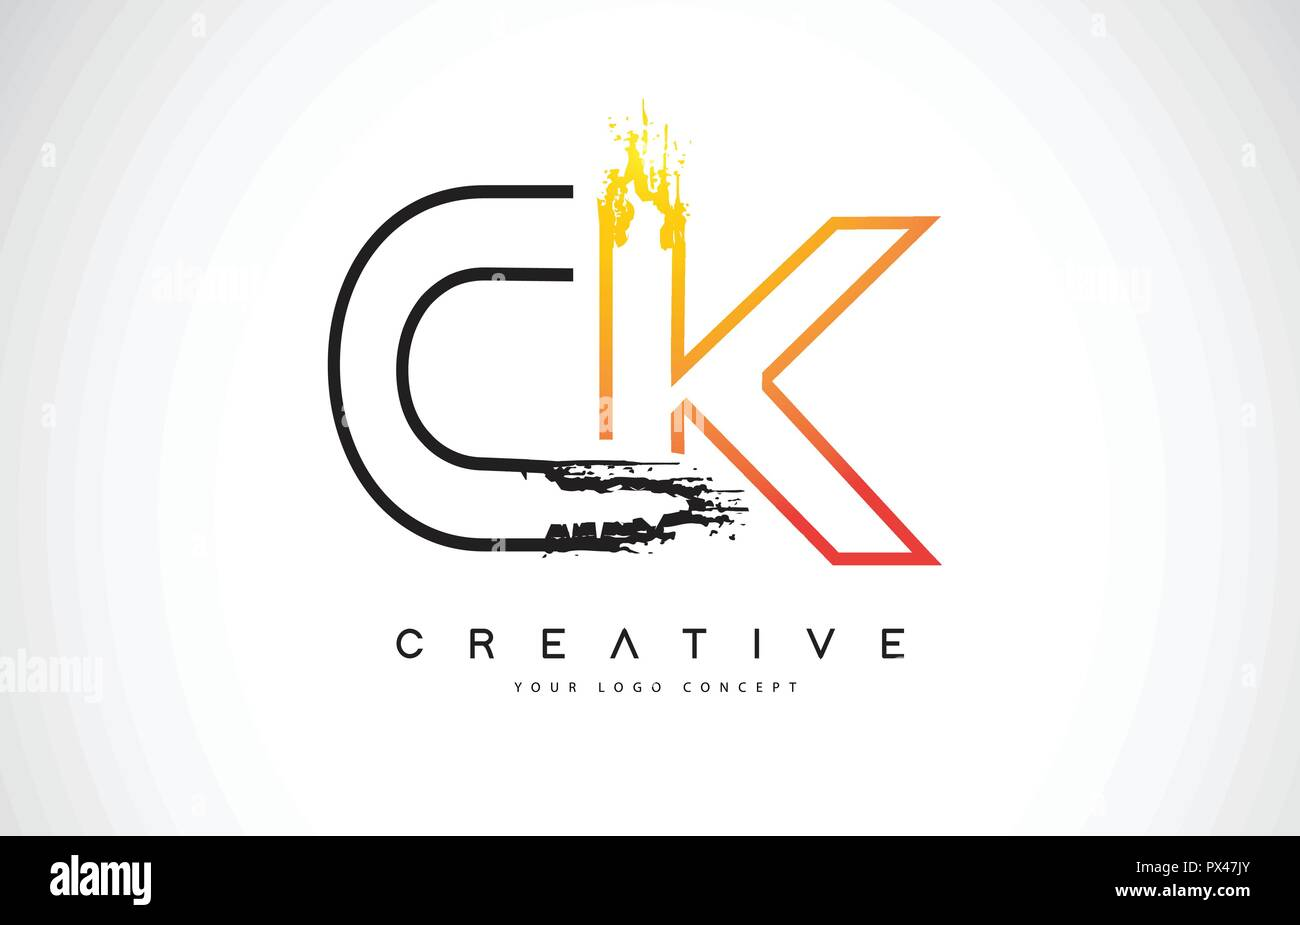 CK Creative Modern Logo Design Vetor with Orange and Black